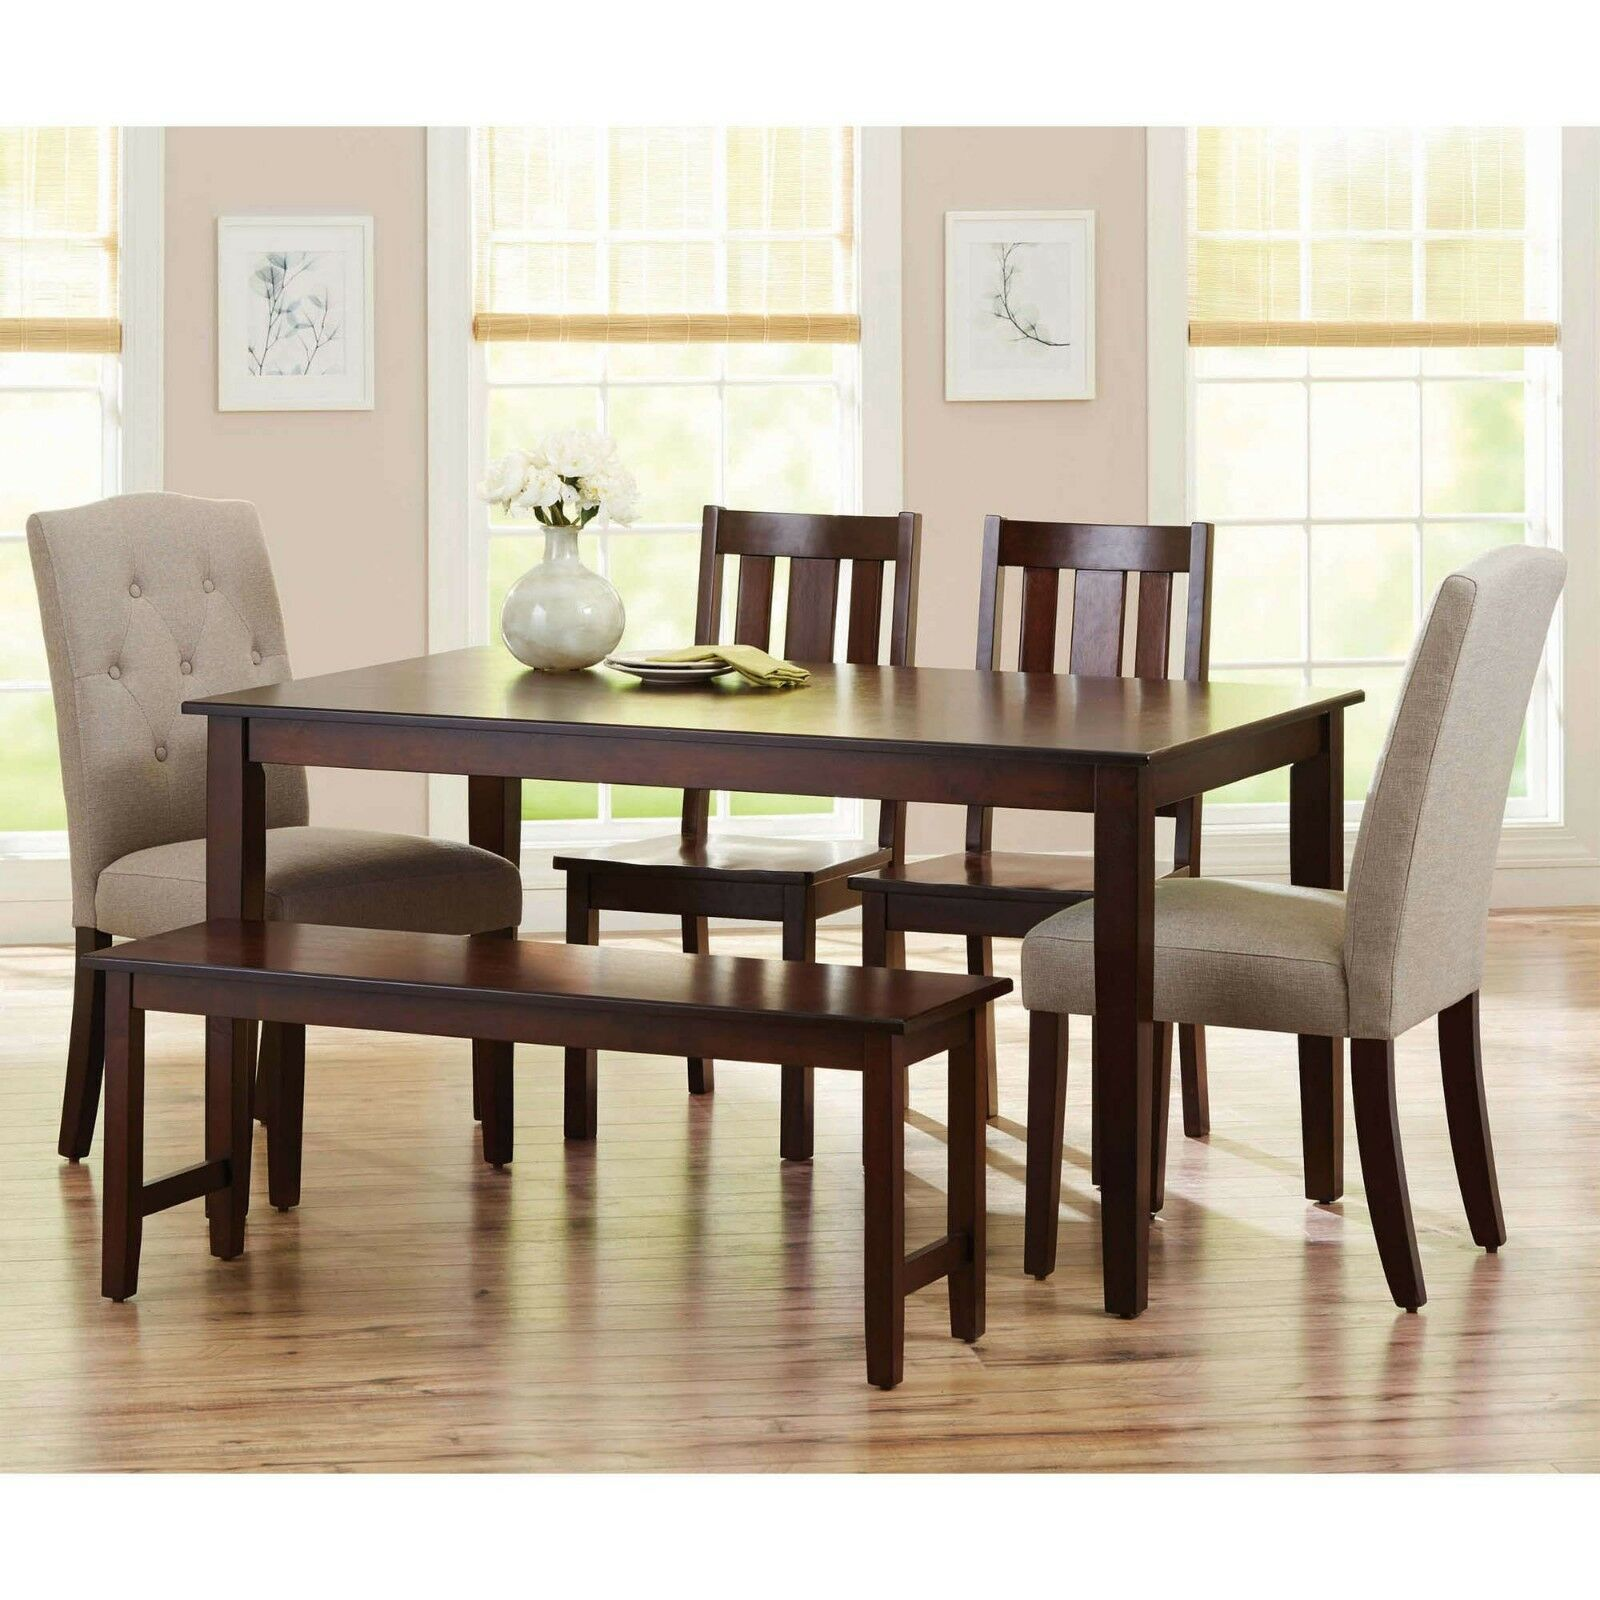 Farmhouse Dining Room Table Wood Kitchen Breakfast Tables 6 Person Rectangular For Sale Online Ebay